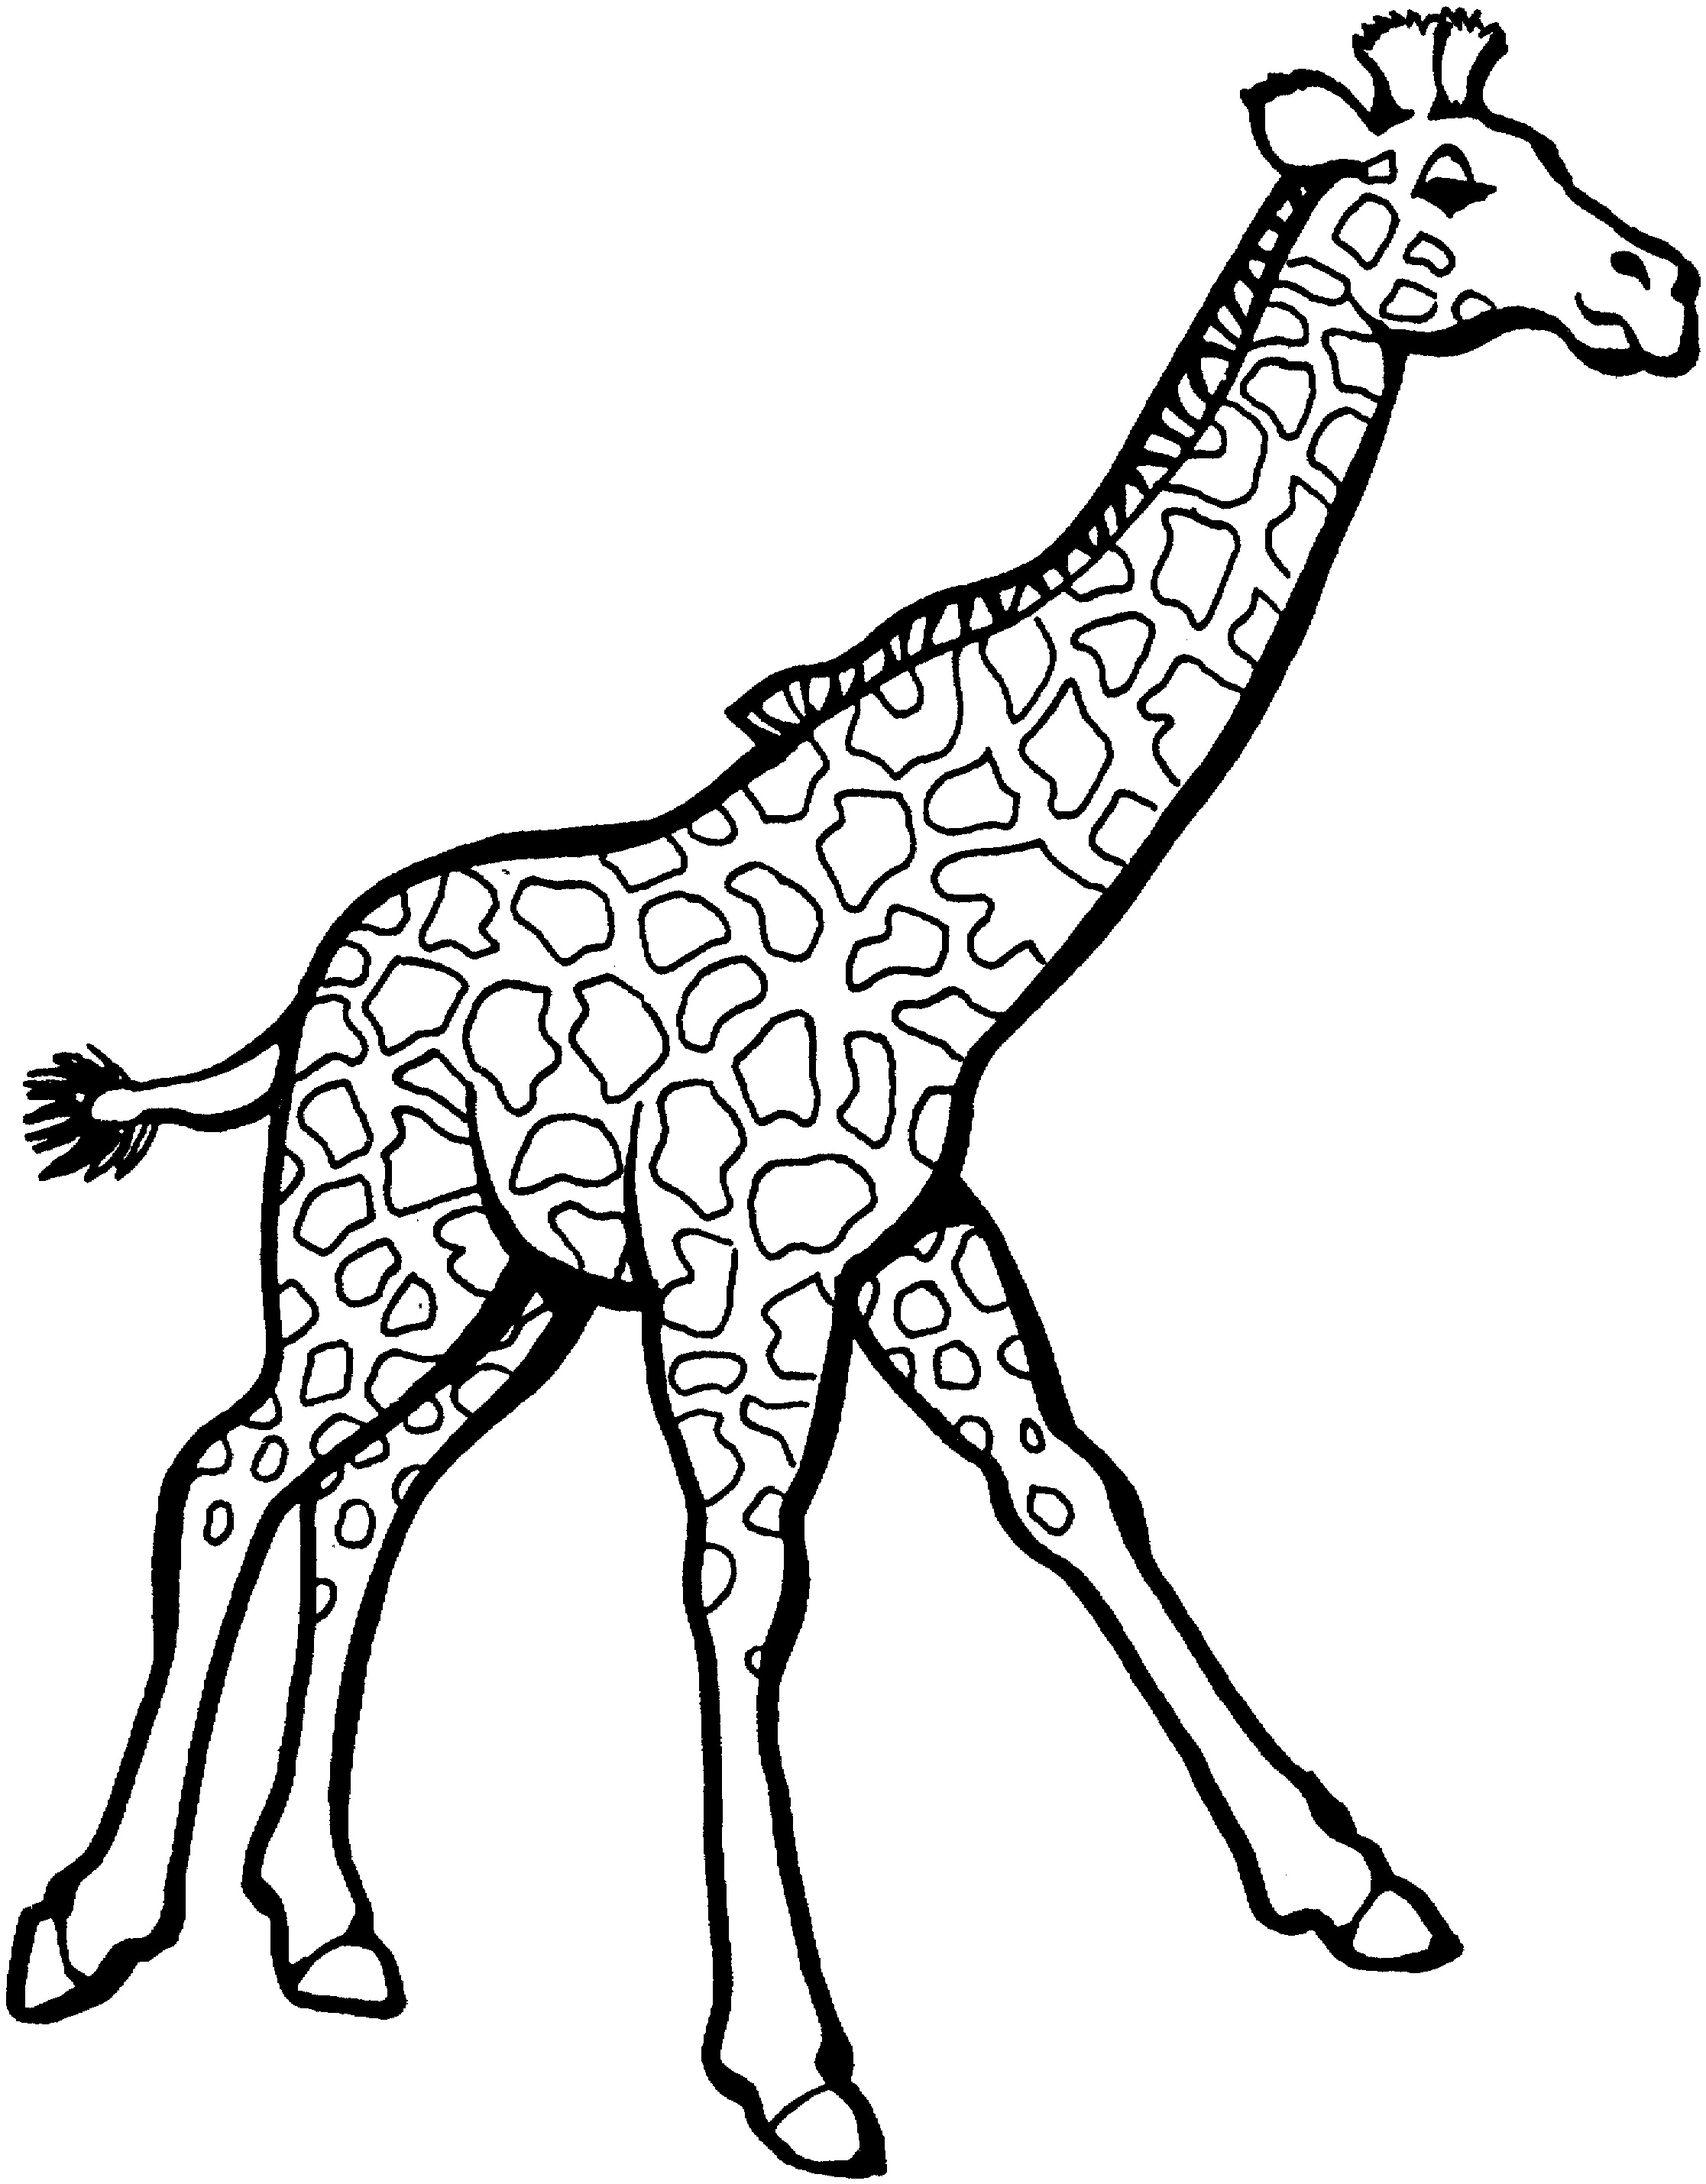 Giraffe Coloring Pages - Kidsuki